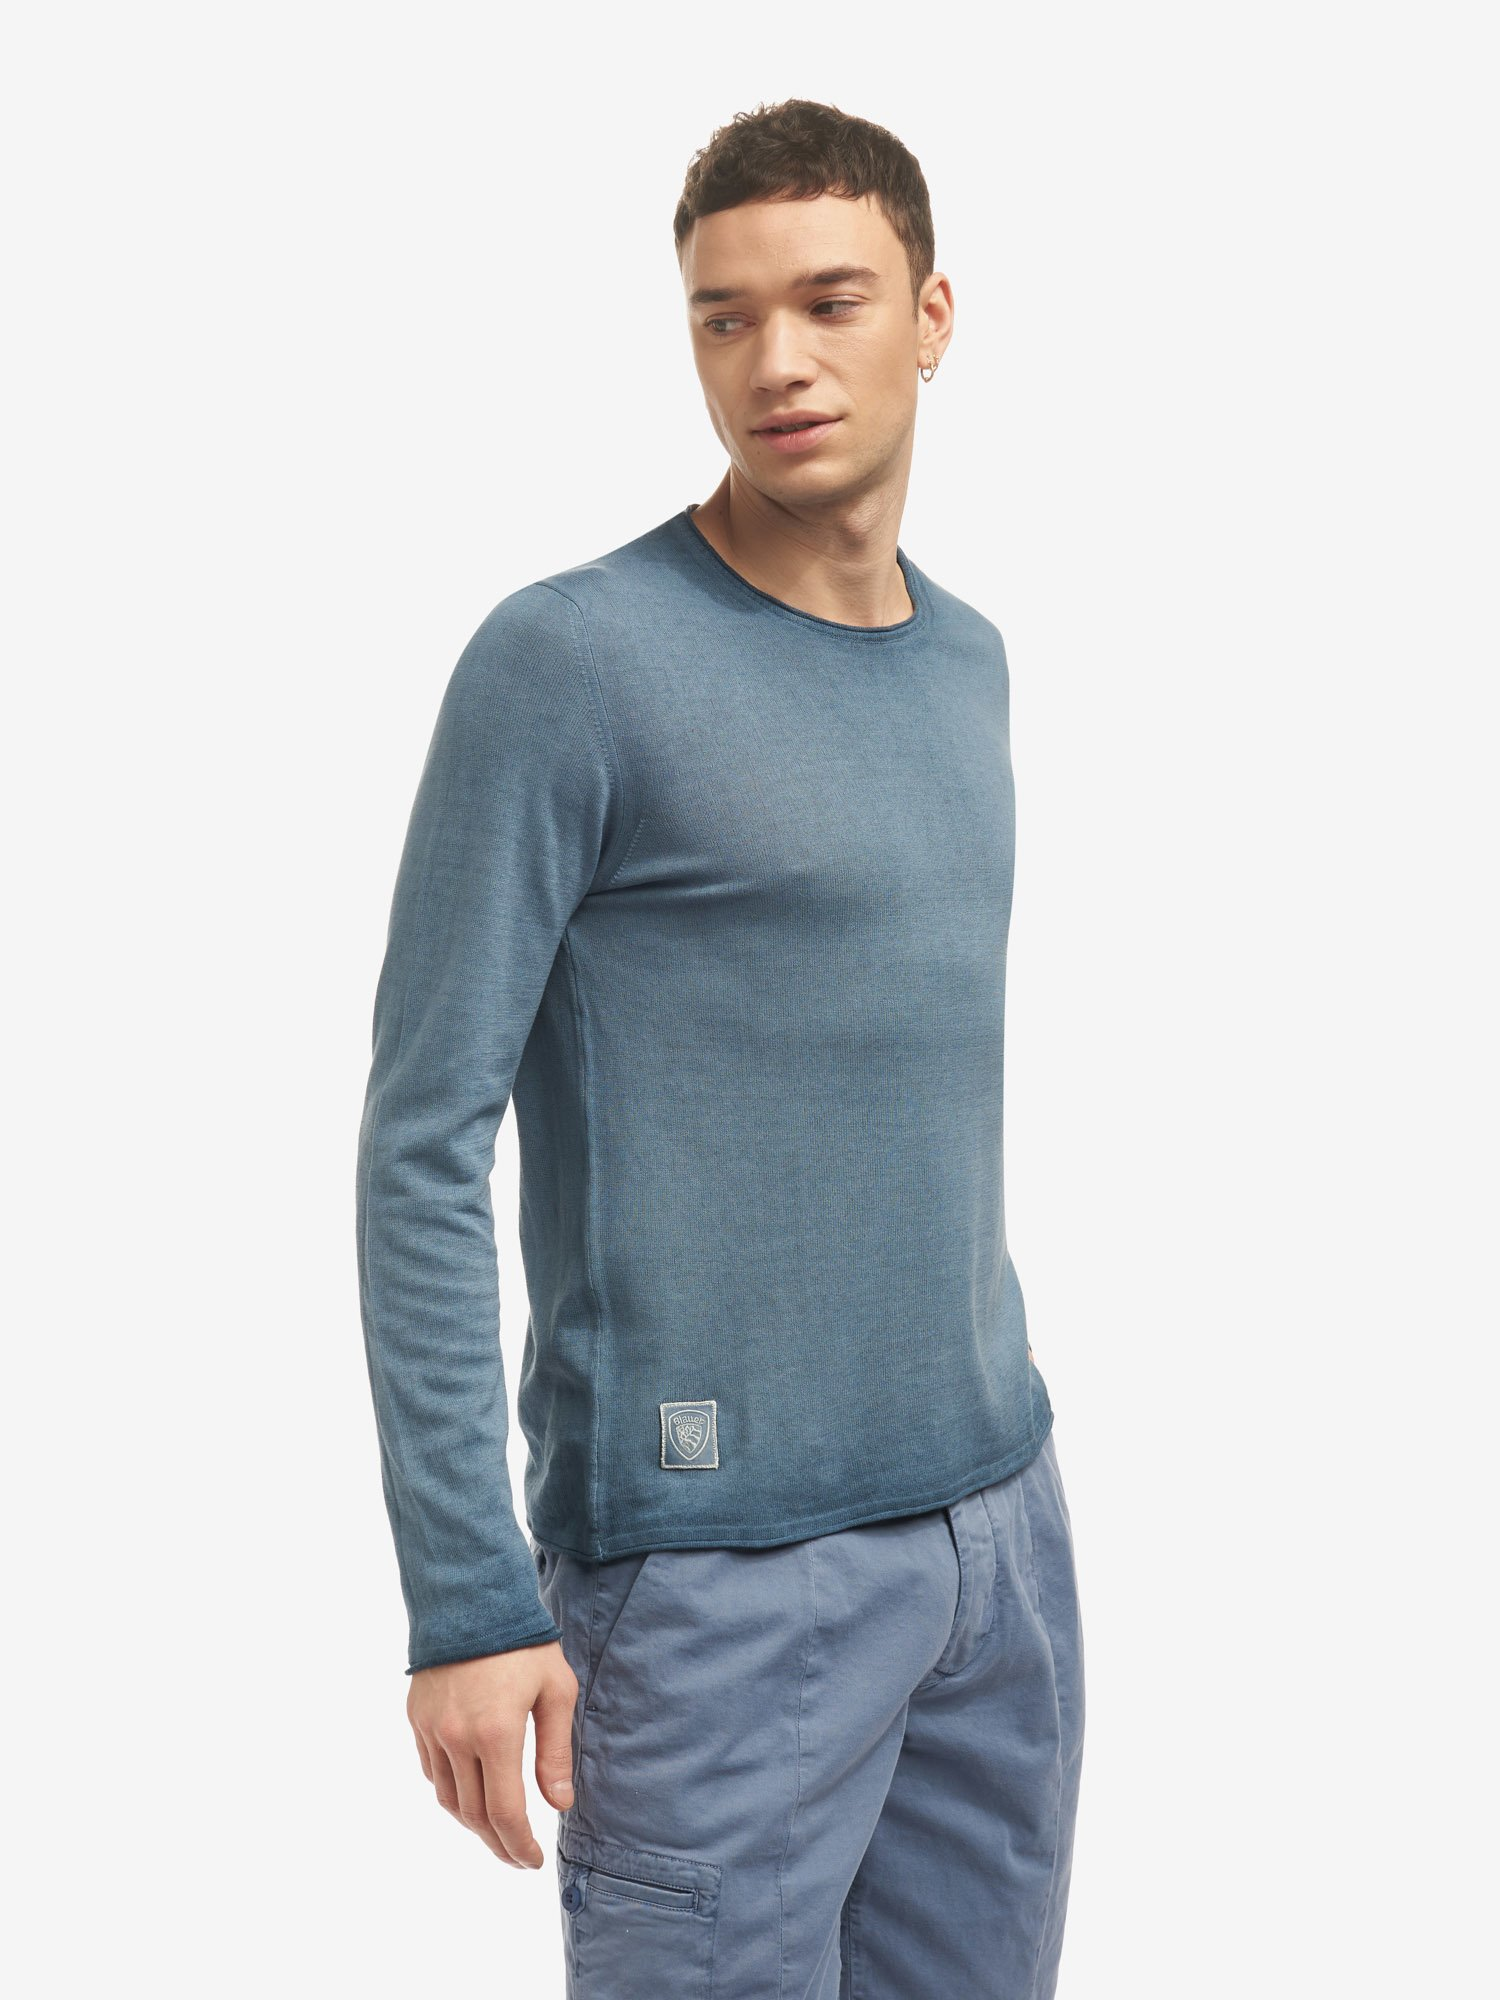 CREW NECK SWEATER - Blauer